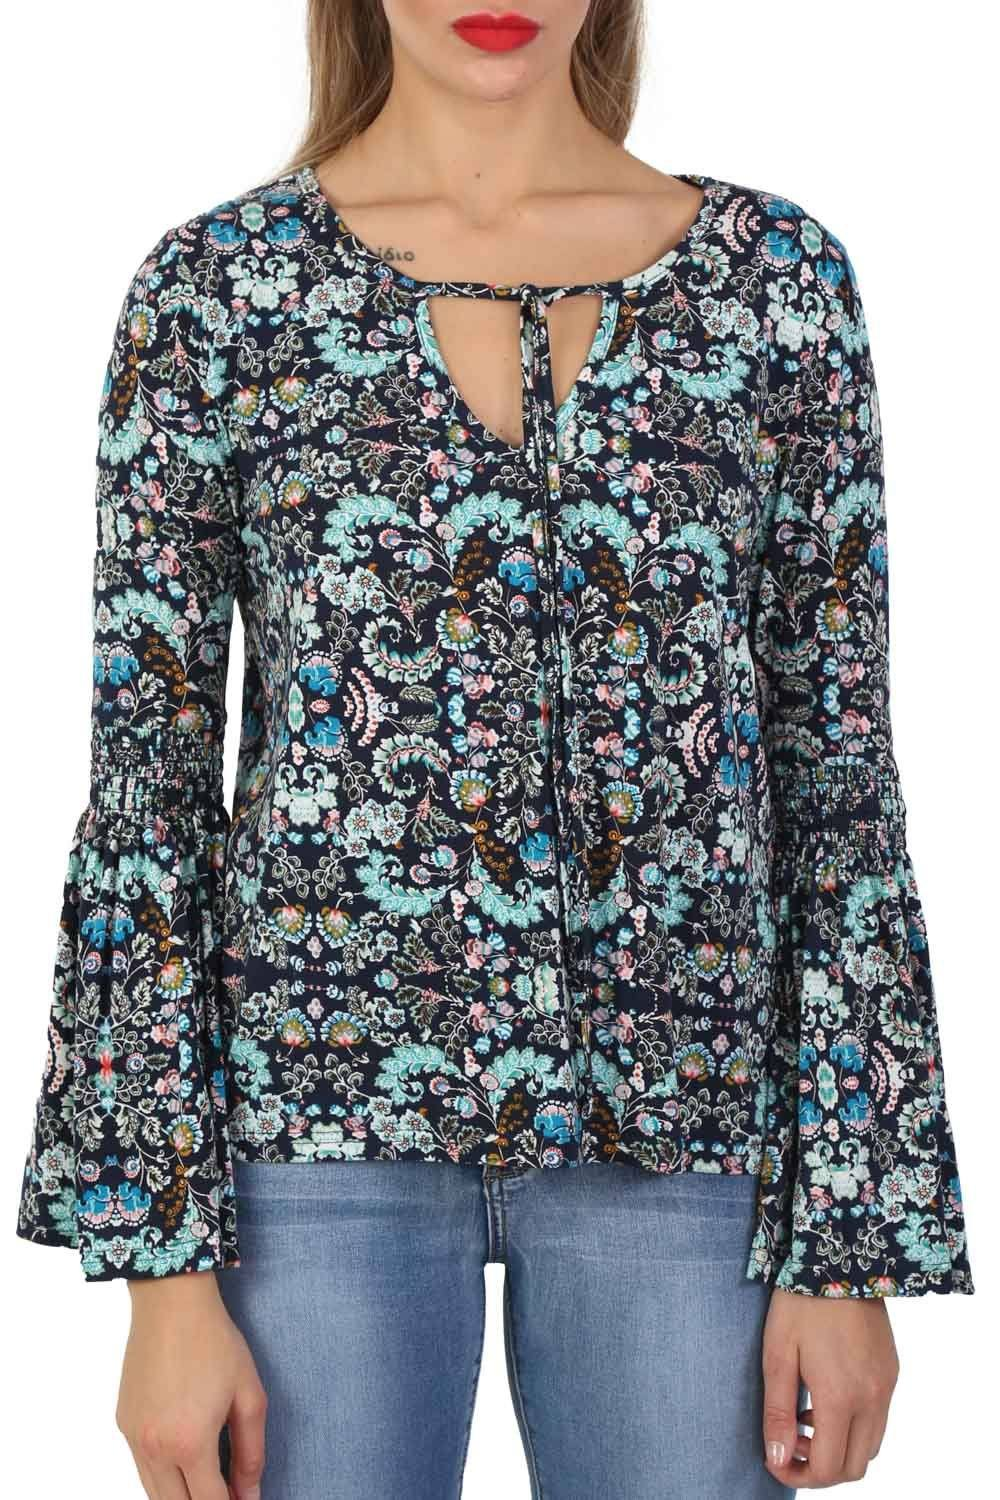 Oriental Floral Print Bell Sleeve Tie Detail Top in Navy Blue 3